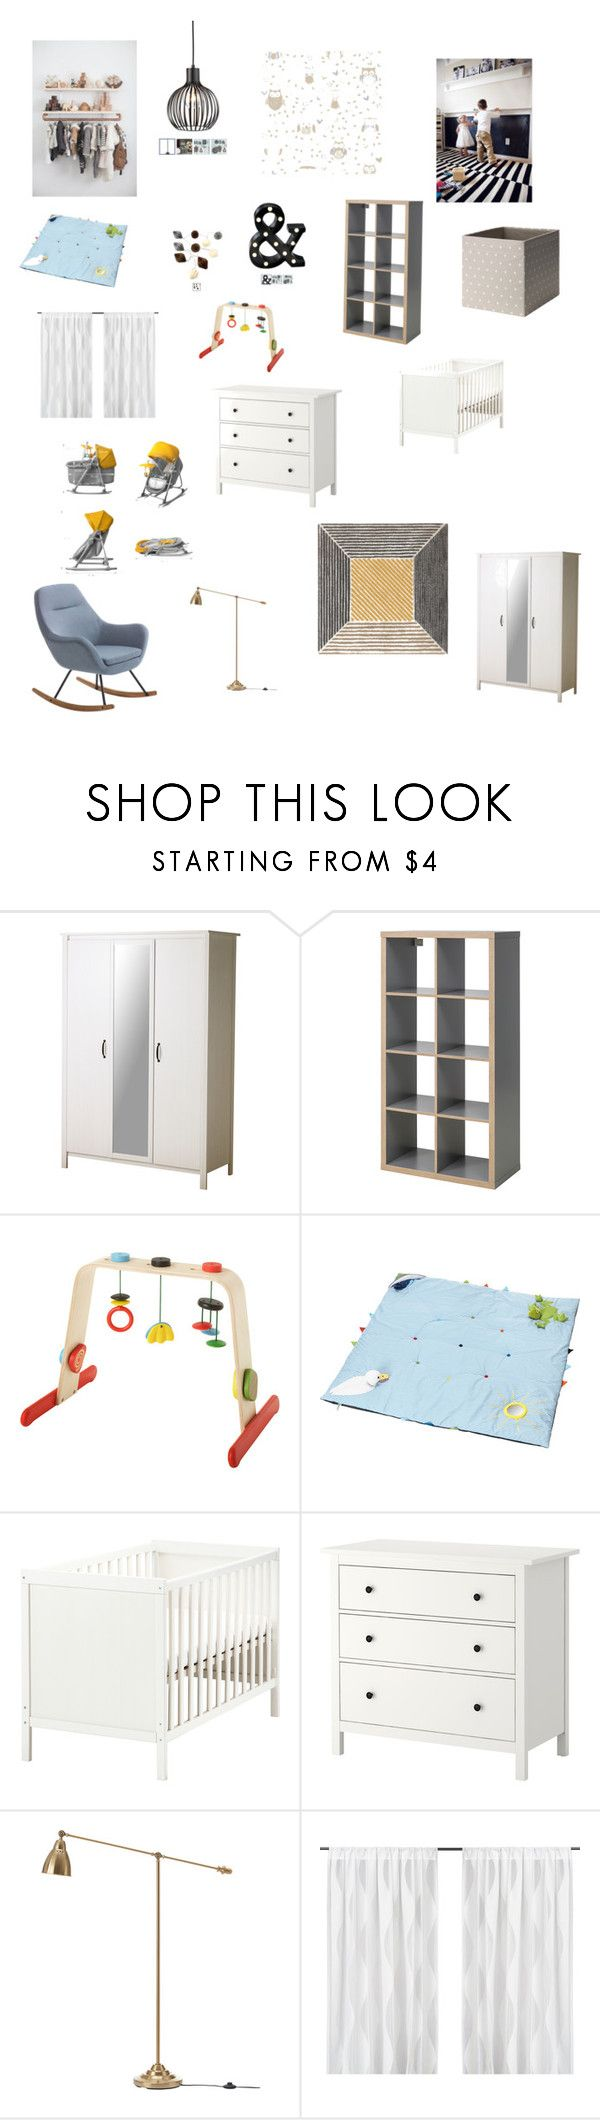 """kids room"" by spimonique on Polyvore featuring interior, interiors, interior design, home, home decor, interior decorating and Leka"